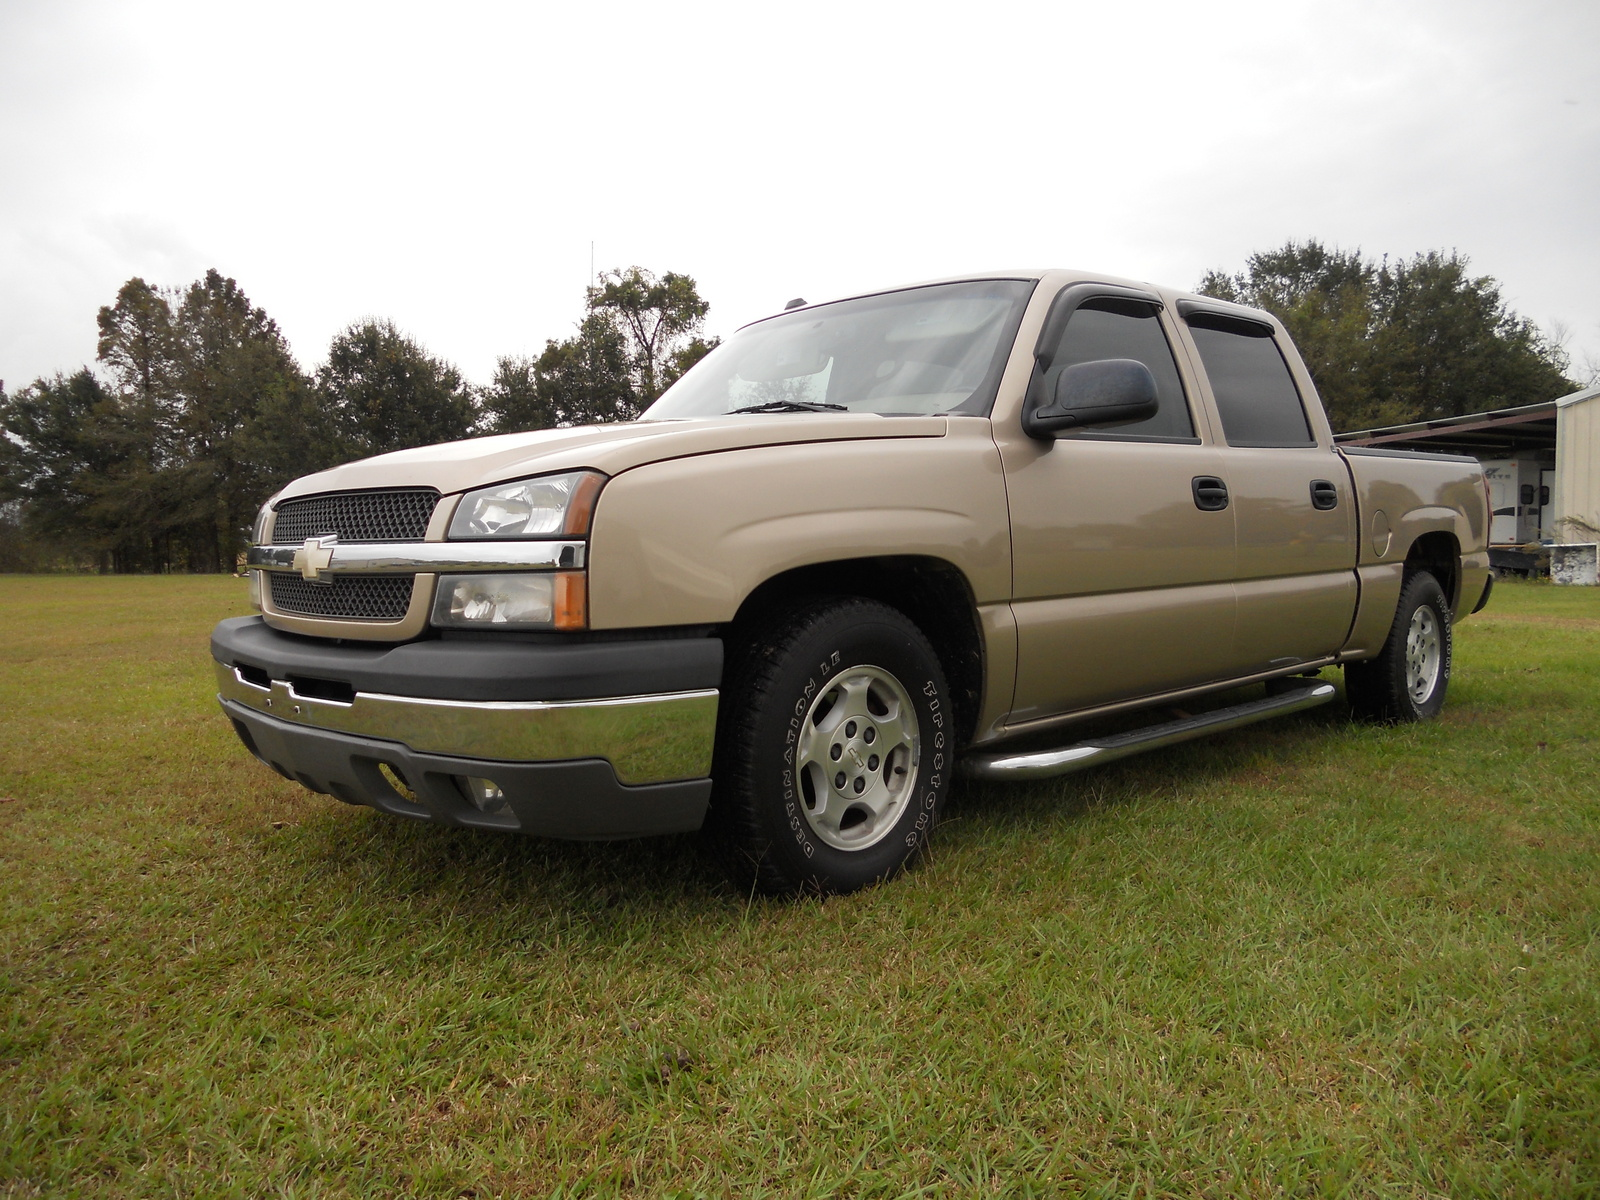 2004 chevy silverado 1500 car interior design. Black Bedroom Furniture Sets. Home Design Ideas